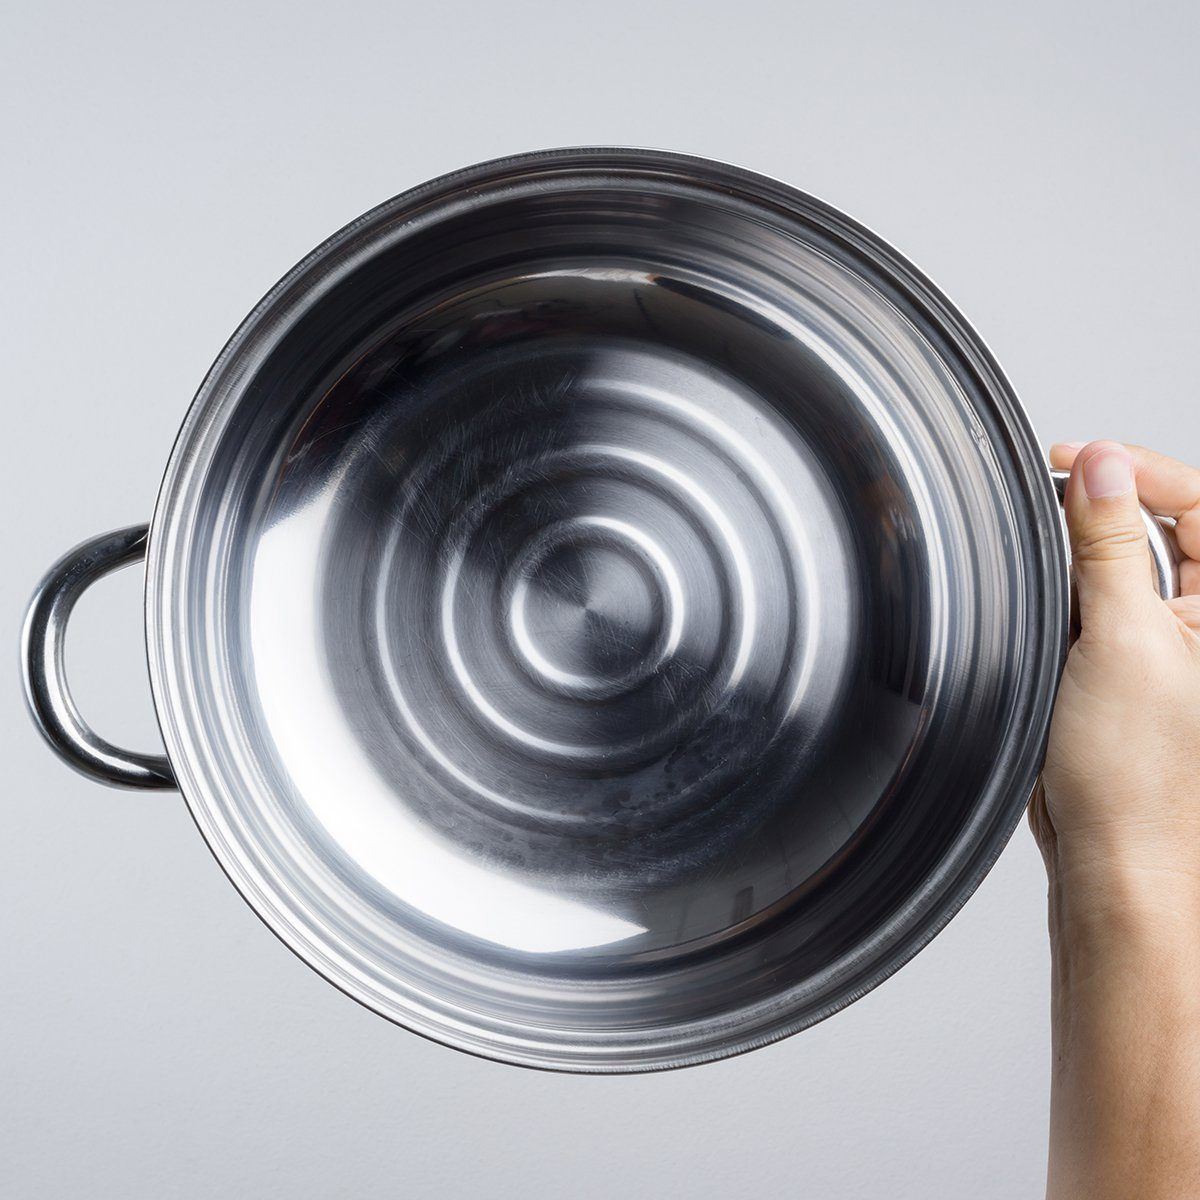 Hand holding stainless steel pan or wide pot on white background